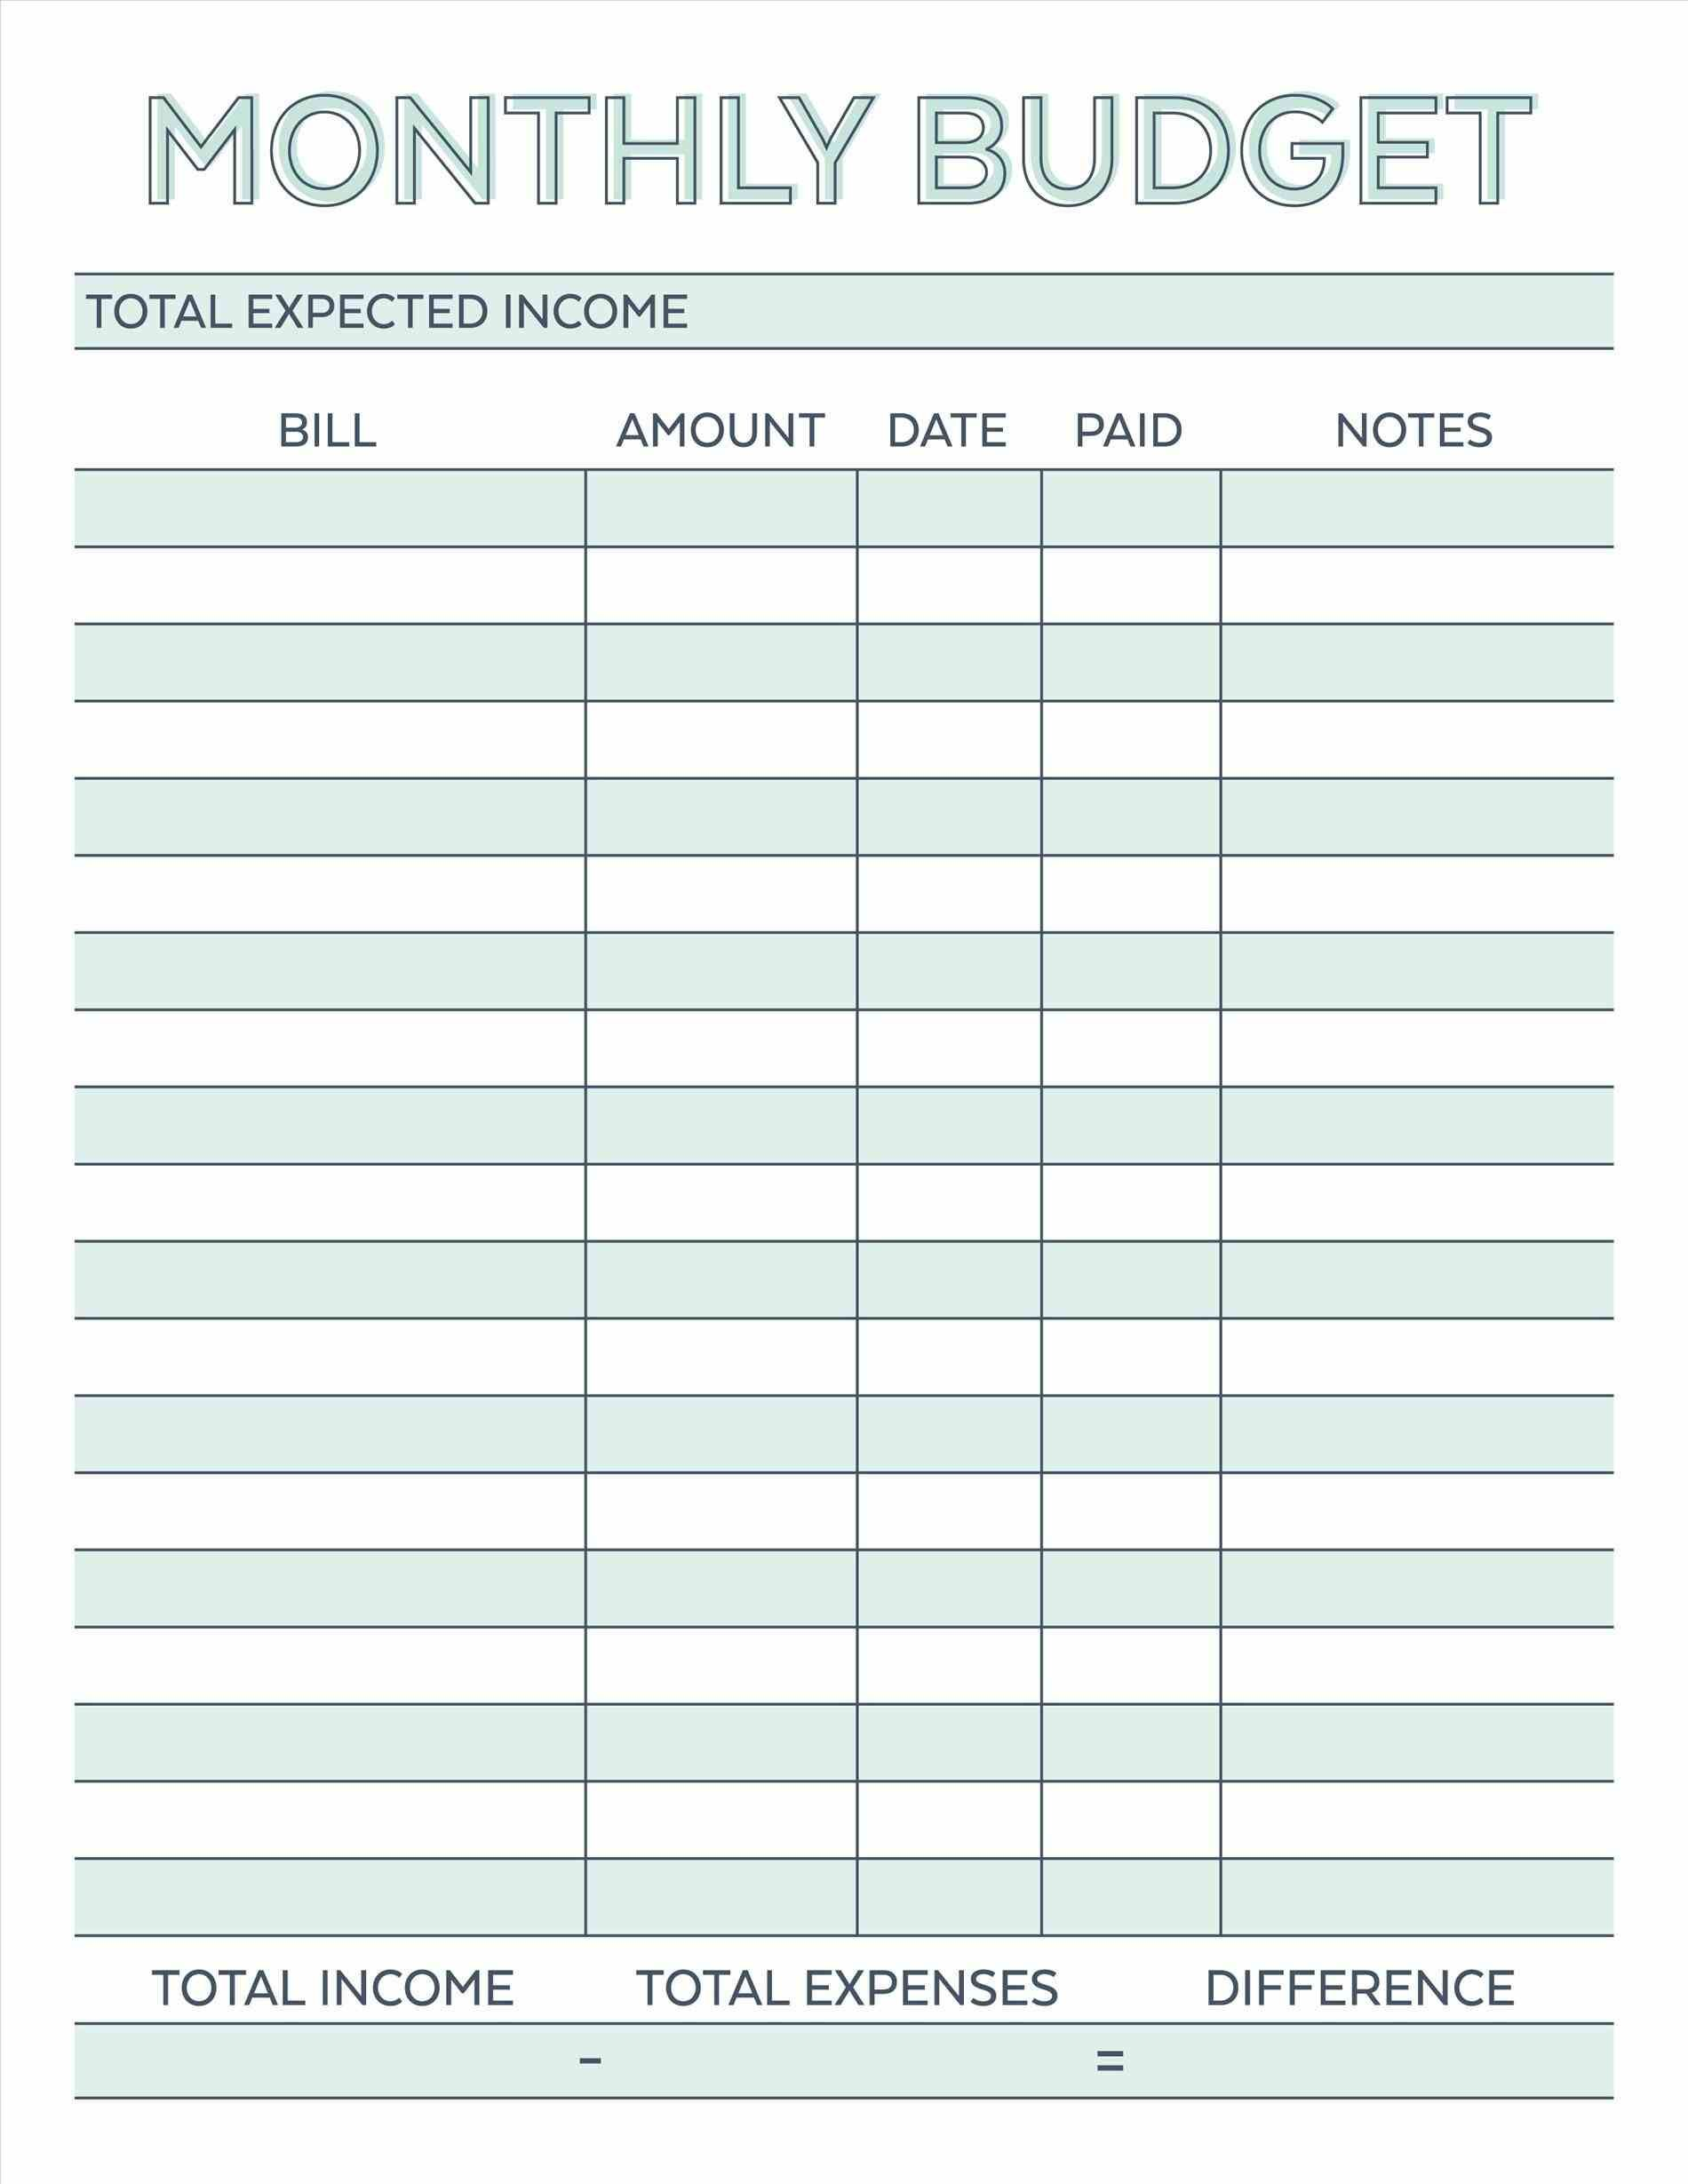 budget planner planner worksheet monthly bills template free printable free simple monthly budget planner printable monthly budget template worksheet